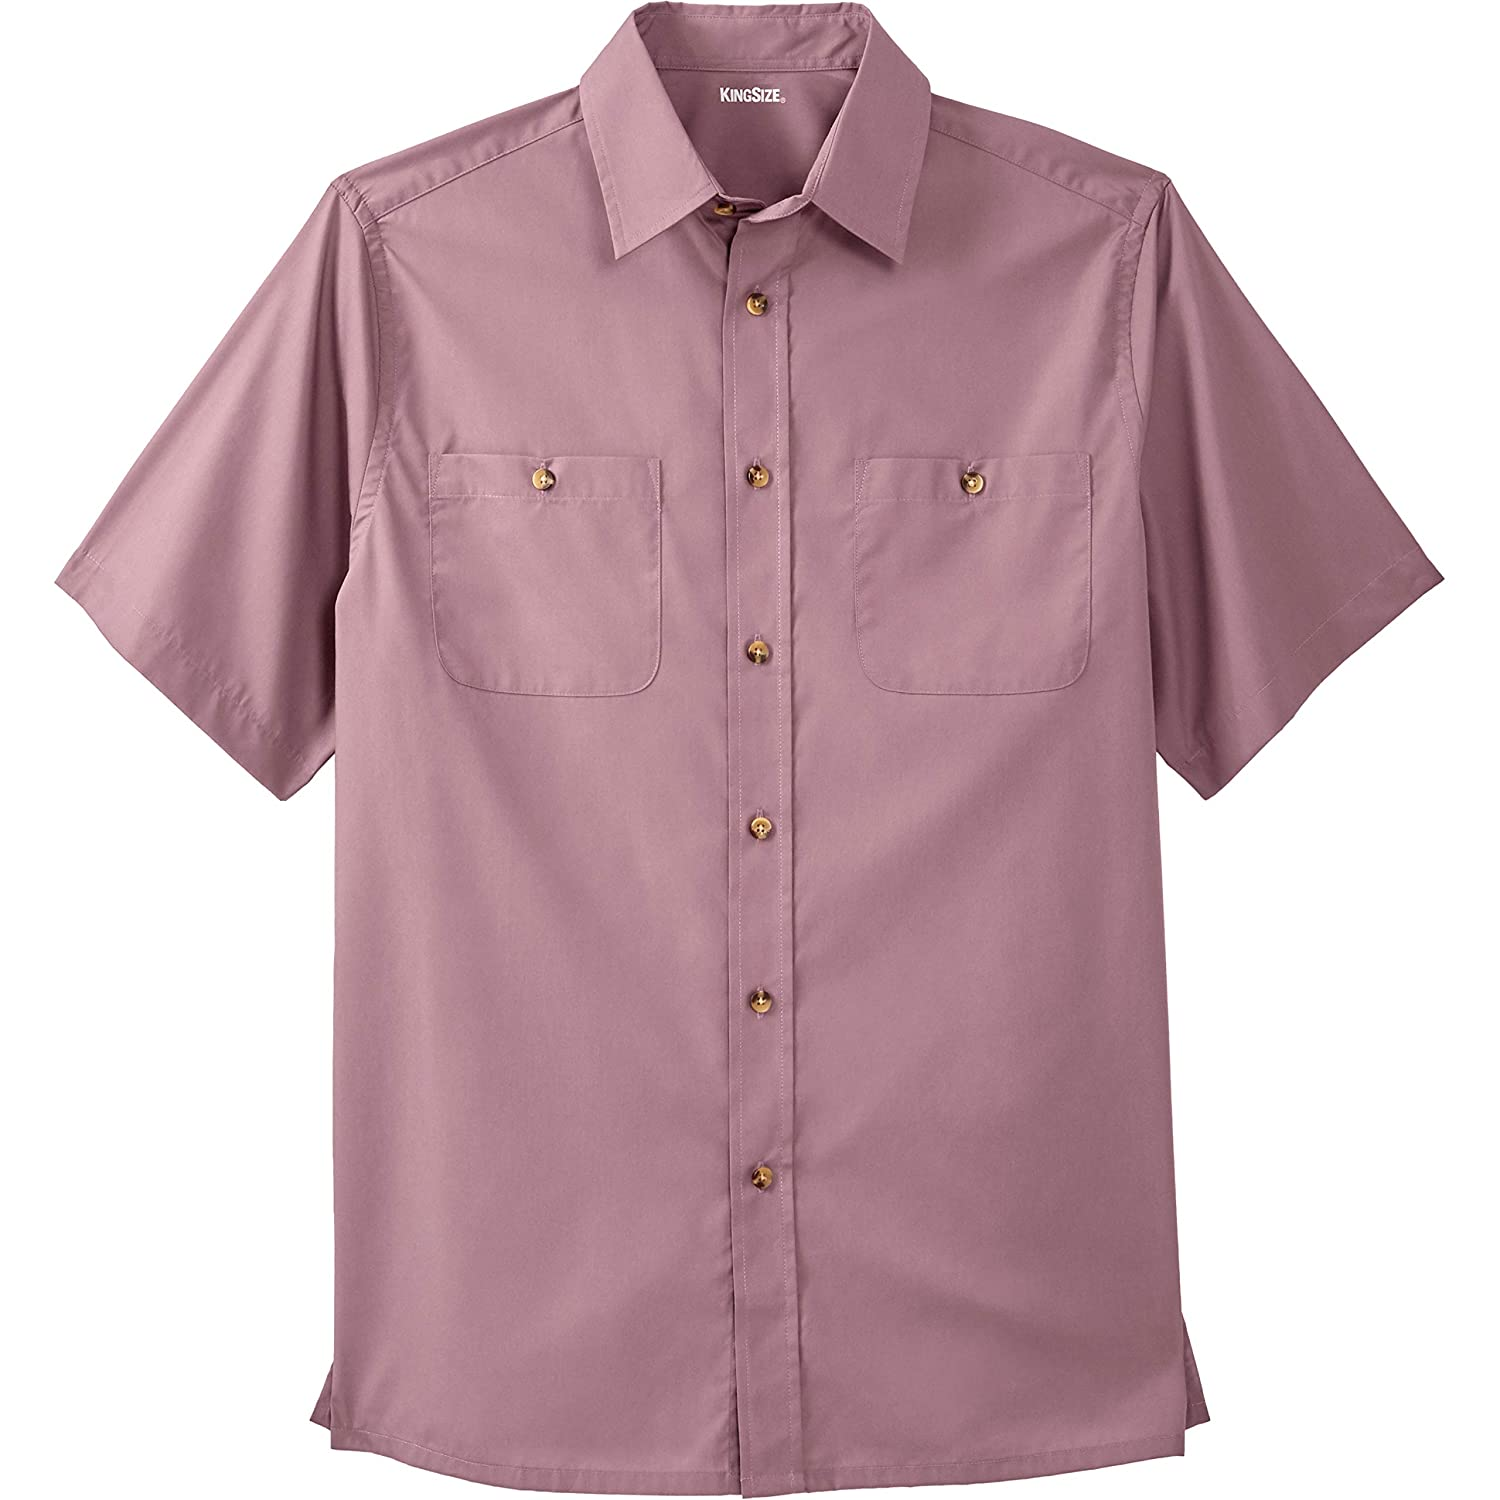 KingSize Mens Big /& Tall Short Sleeve Solid Sport Shirt